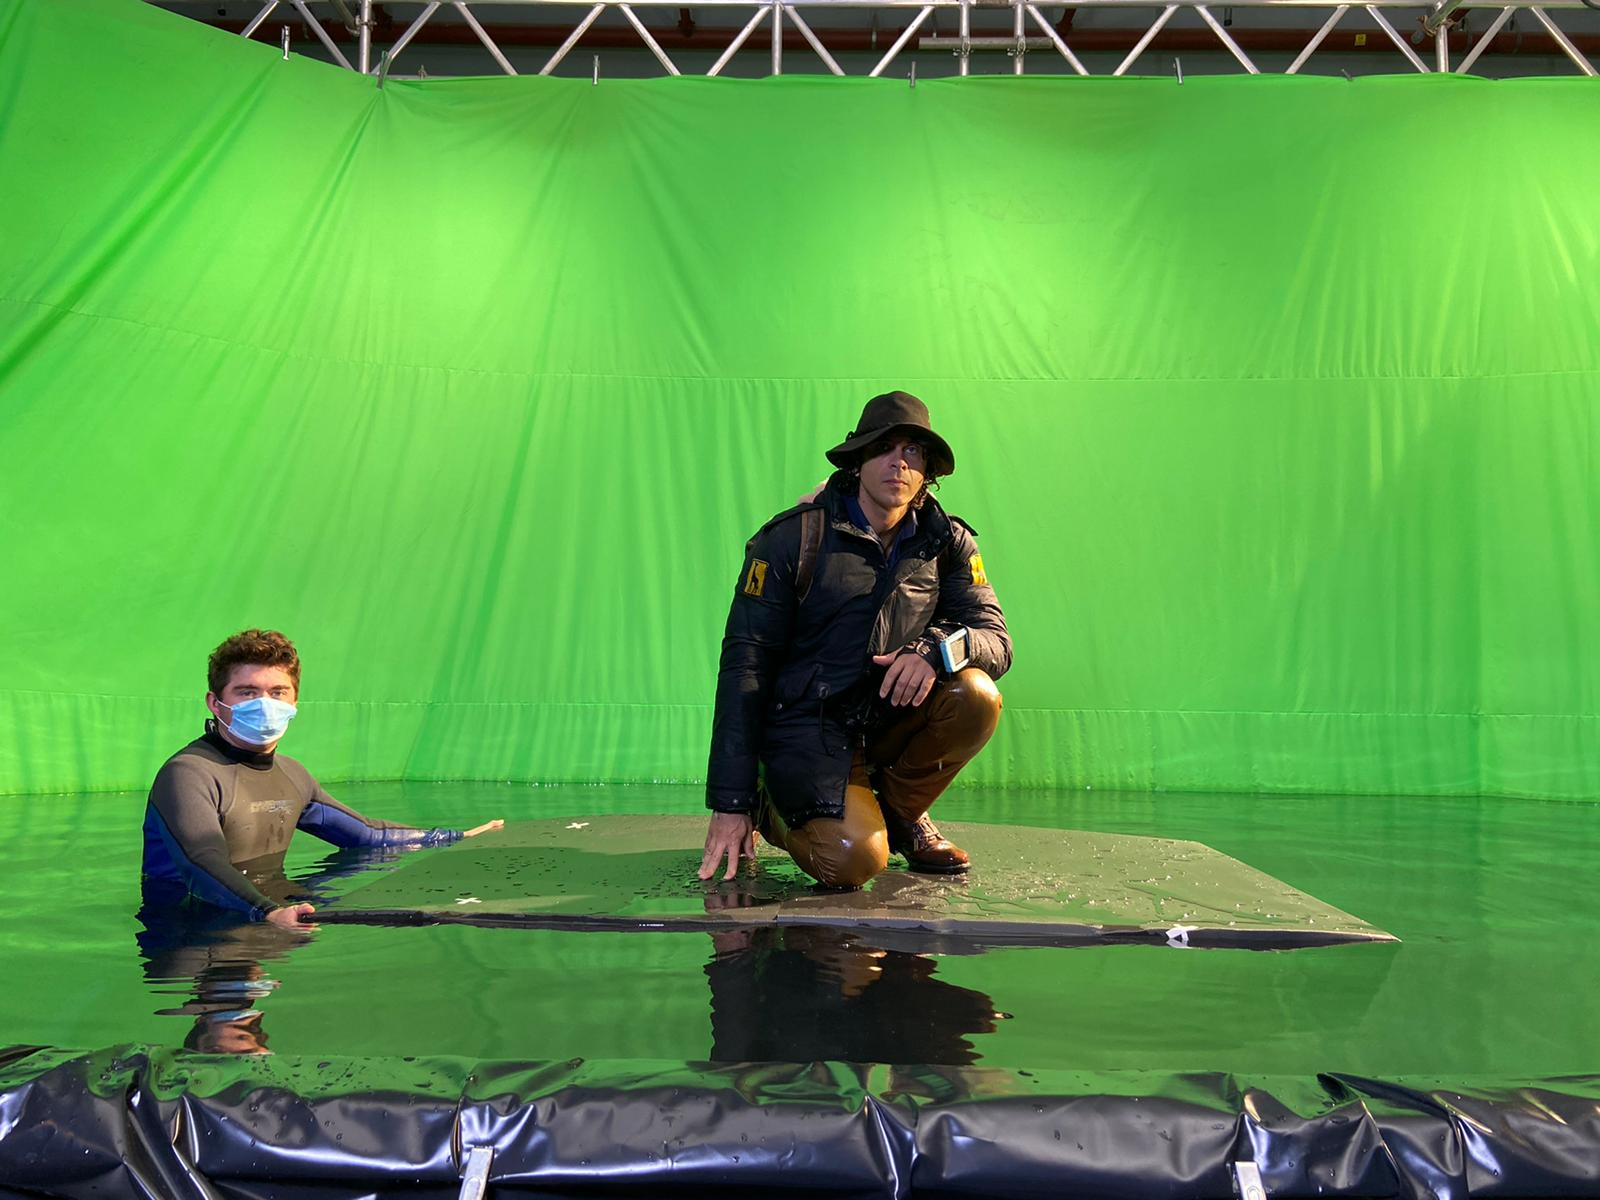 Andy Day filming Andy's Aquatic Adventures in green screen studio water tank at The Bottle Yard Studios (image BBC)